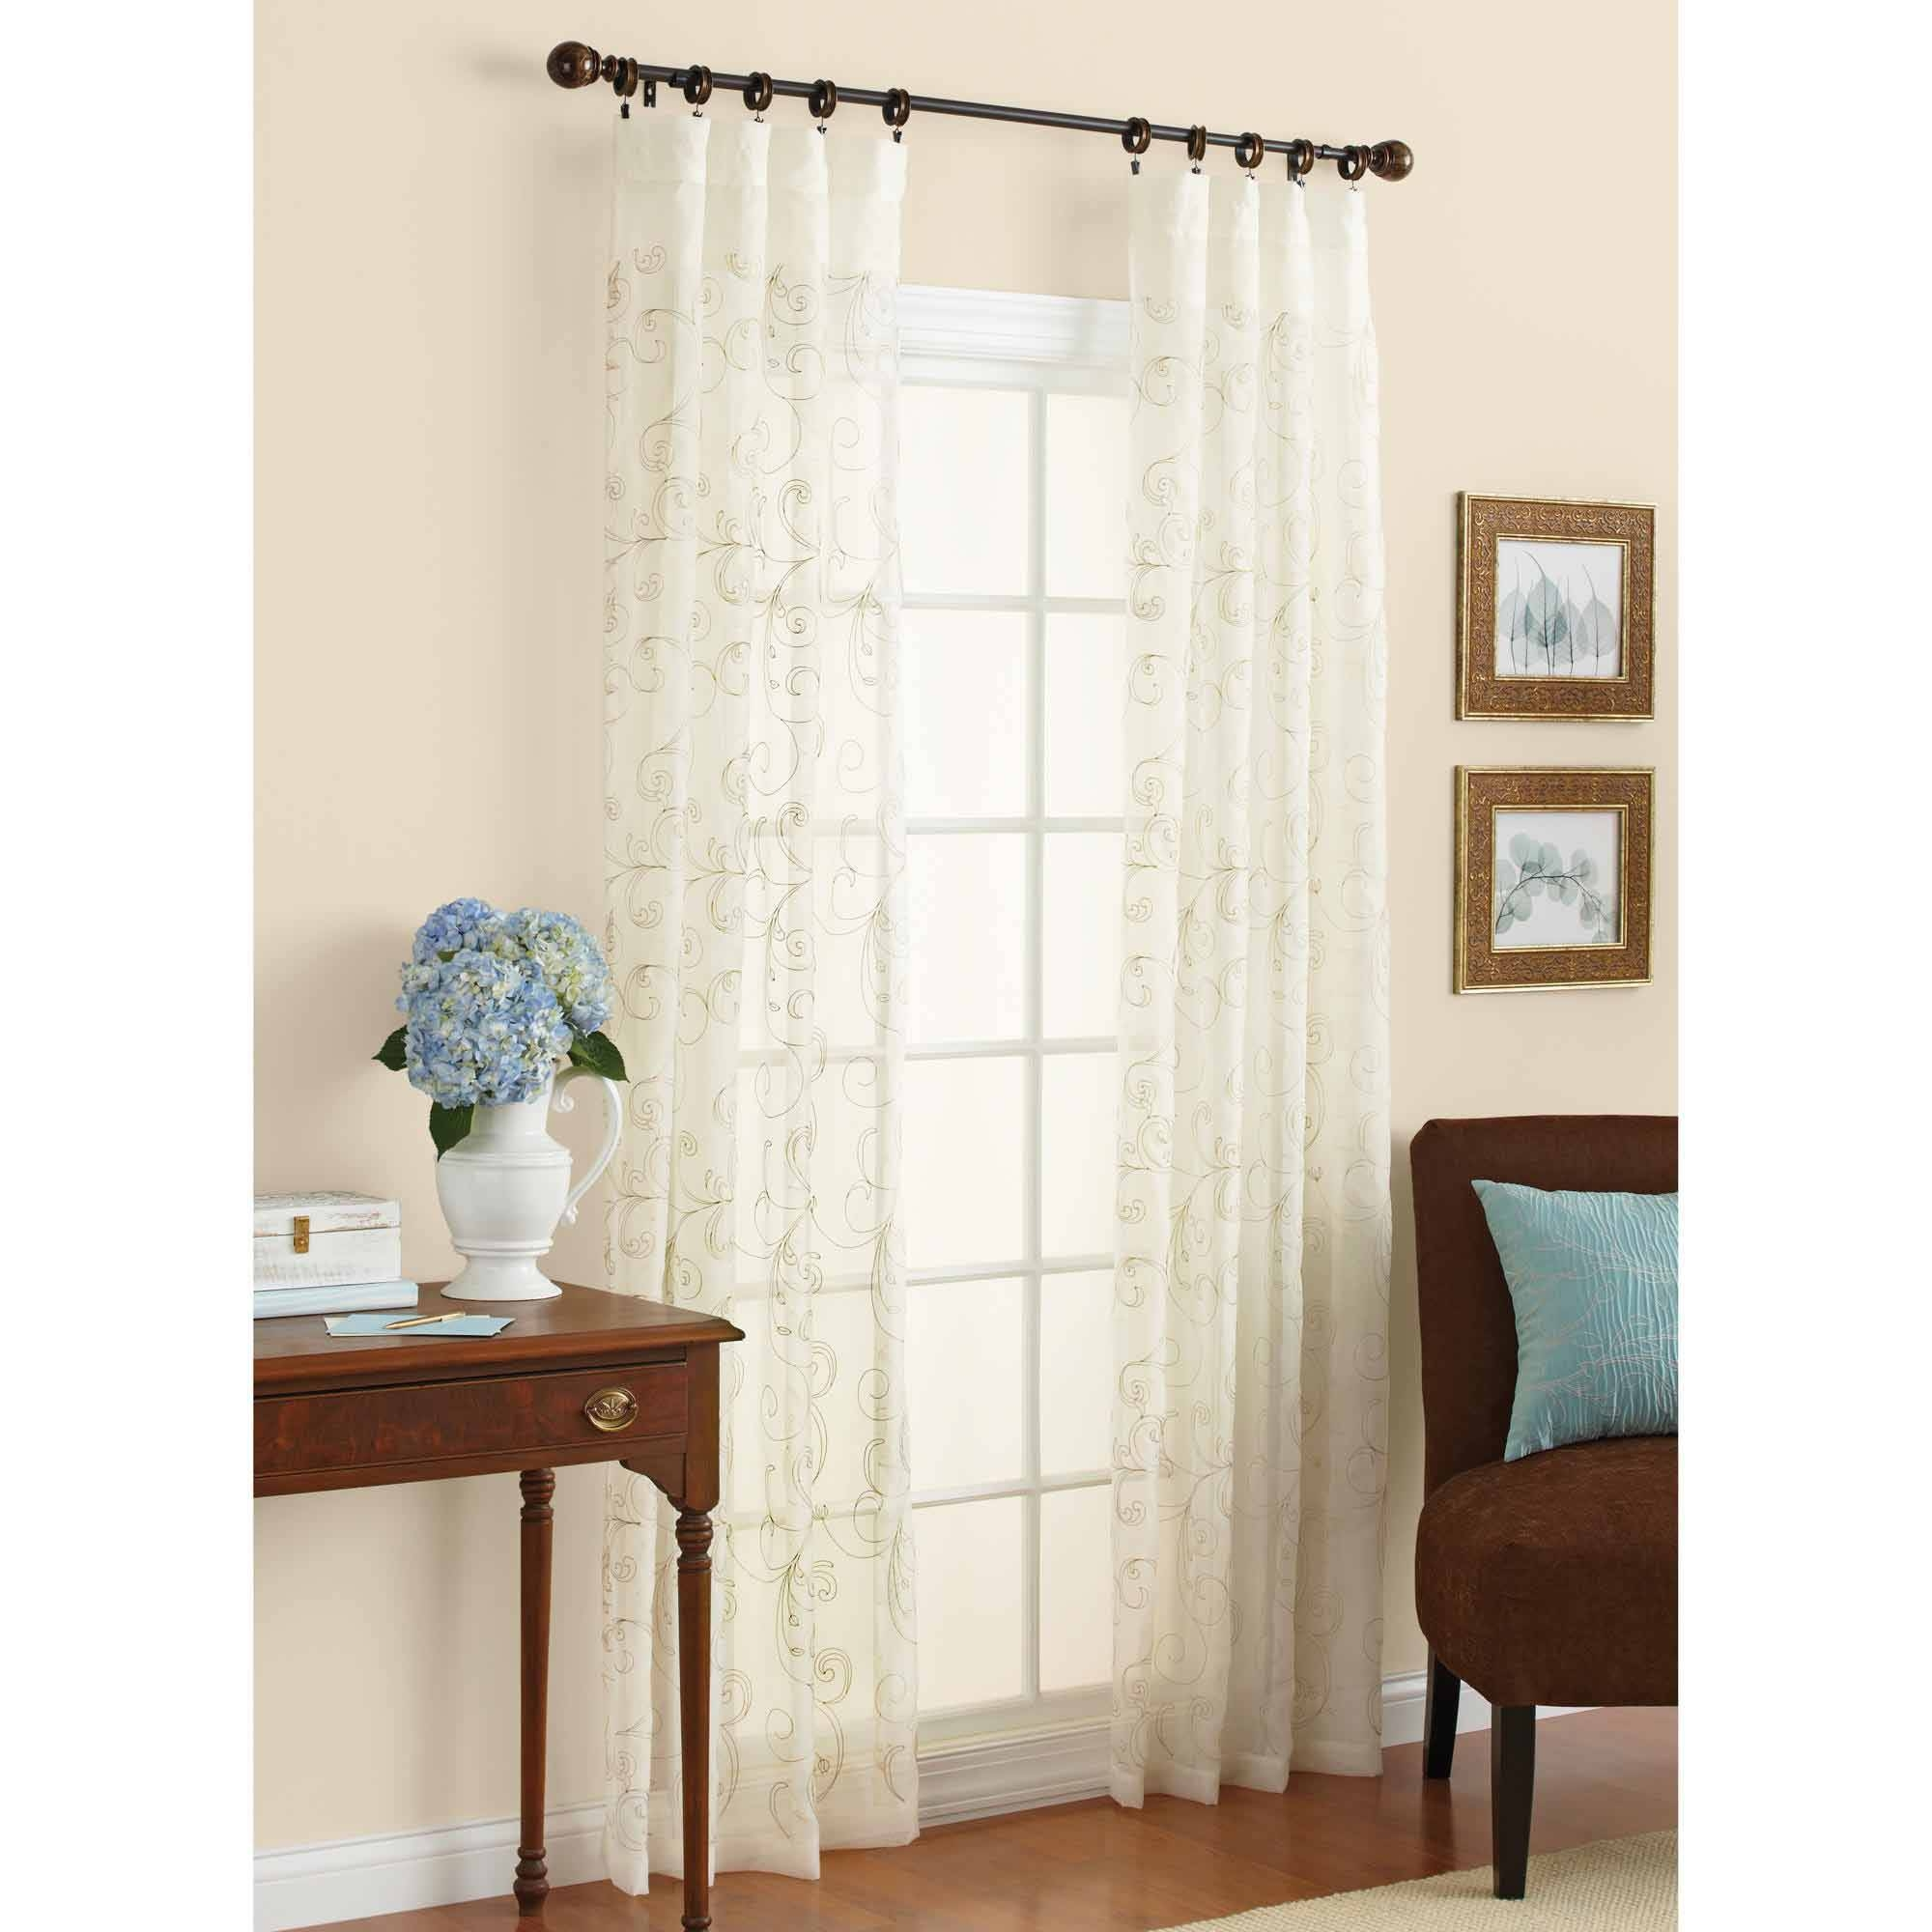 Sheer Curtains For Windows Inside Sheer White Curtain Panels (Image 16 of 25)